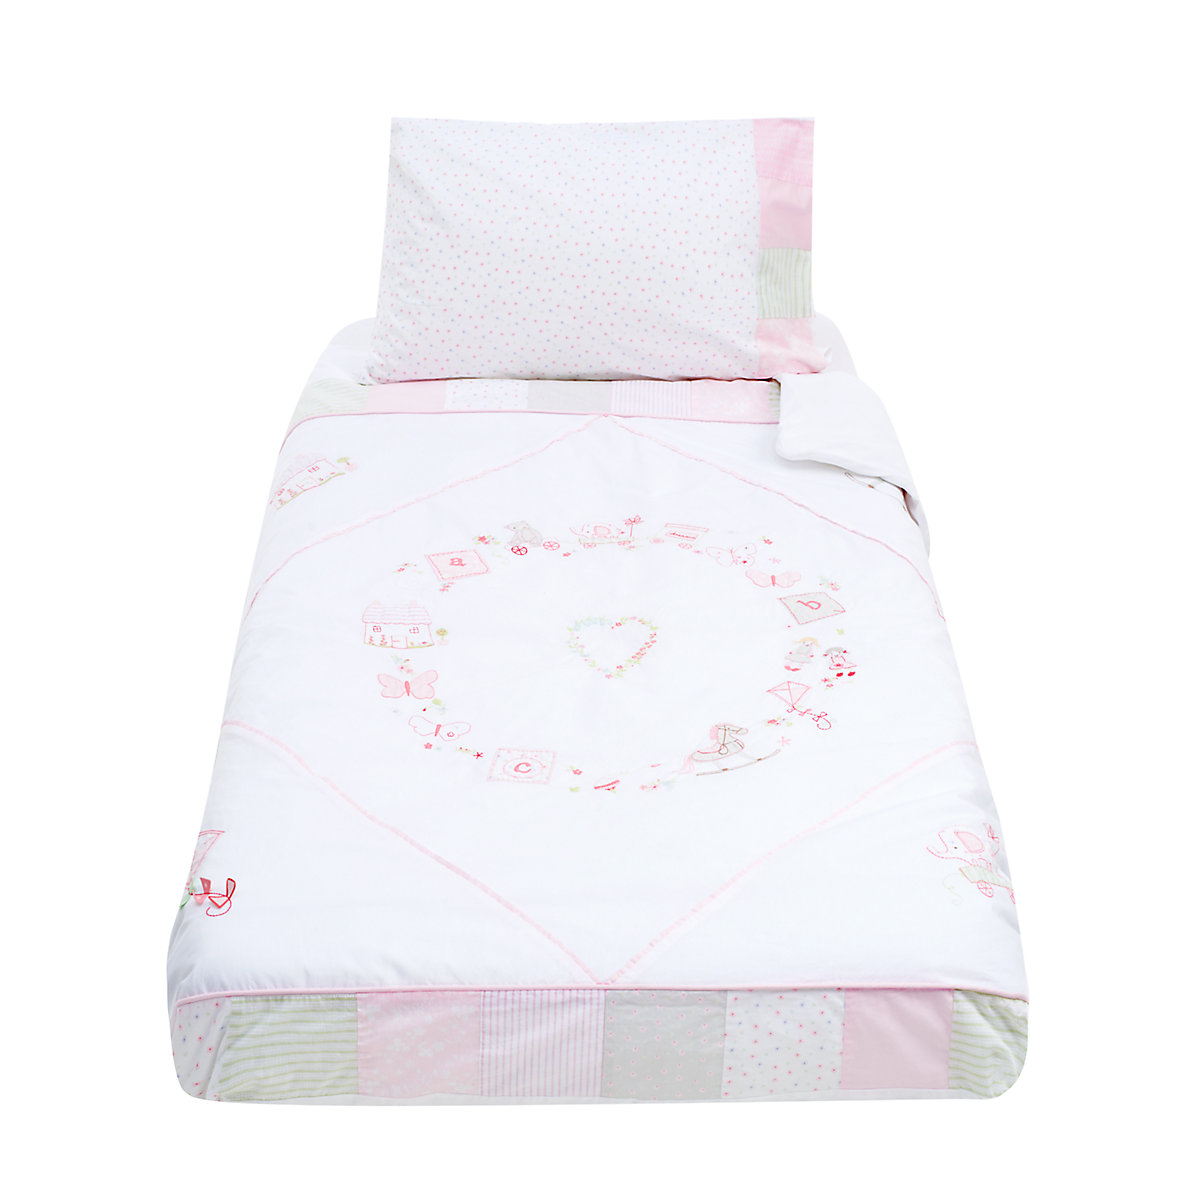 mothercare rosy days cot bed duvet set